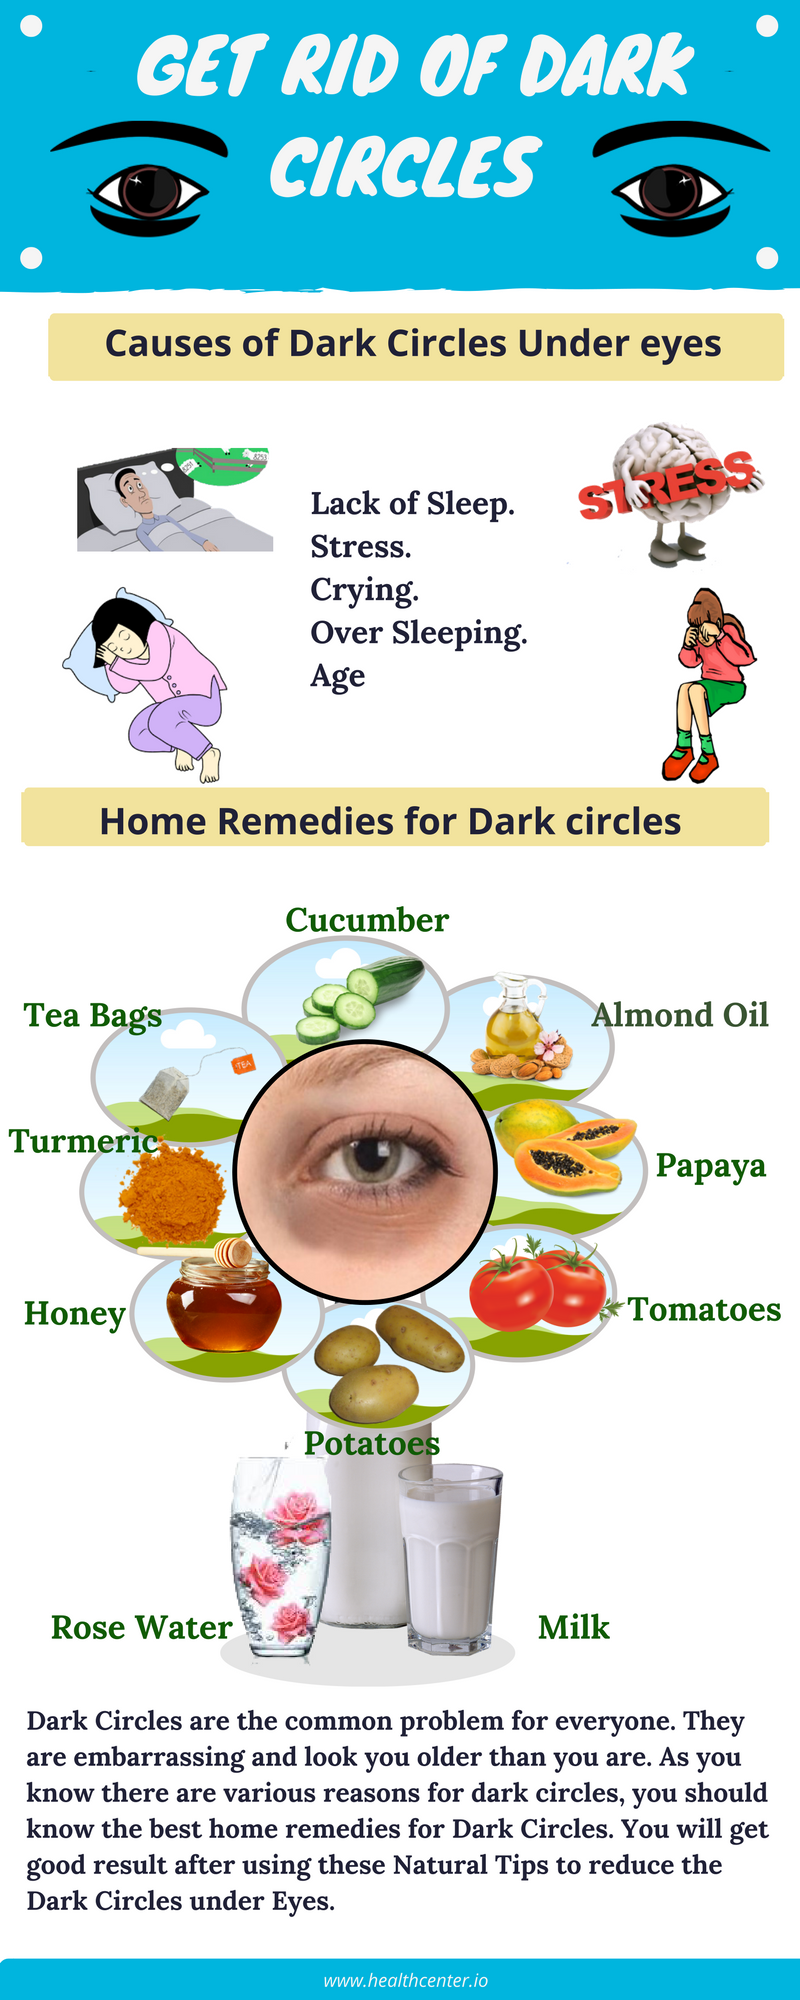 11 Best Home Remedies for Dark Circles under eyes at Home permanently.